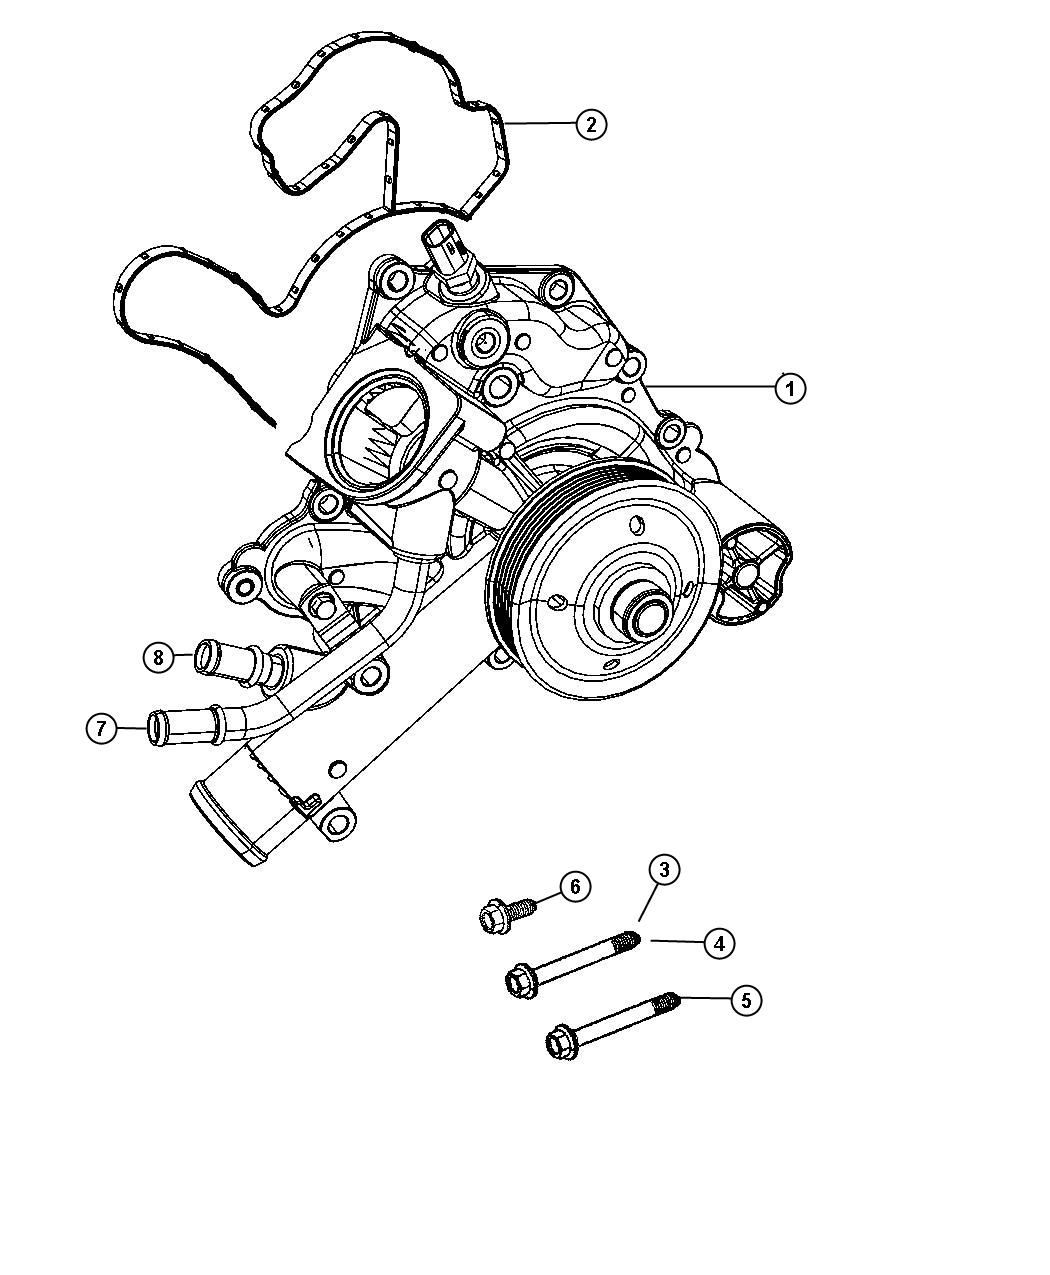 Rear Suspension Diagram For A Pontiac G6 besides P 0996b43f81b3dade together with 36ste 97 Ram 1500 5 9 4x4 Morning When First further 45n7m Kia Sephia Rear Brakes Diagram Brake Shoes Cylinder further 4abd9 Routing Diagram Serpentine Belt 2005 Dodge Sprinter Van. on dodge ram 4 7 engine diagram